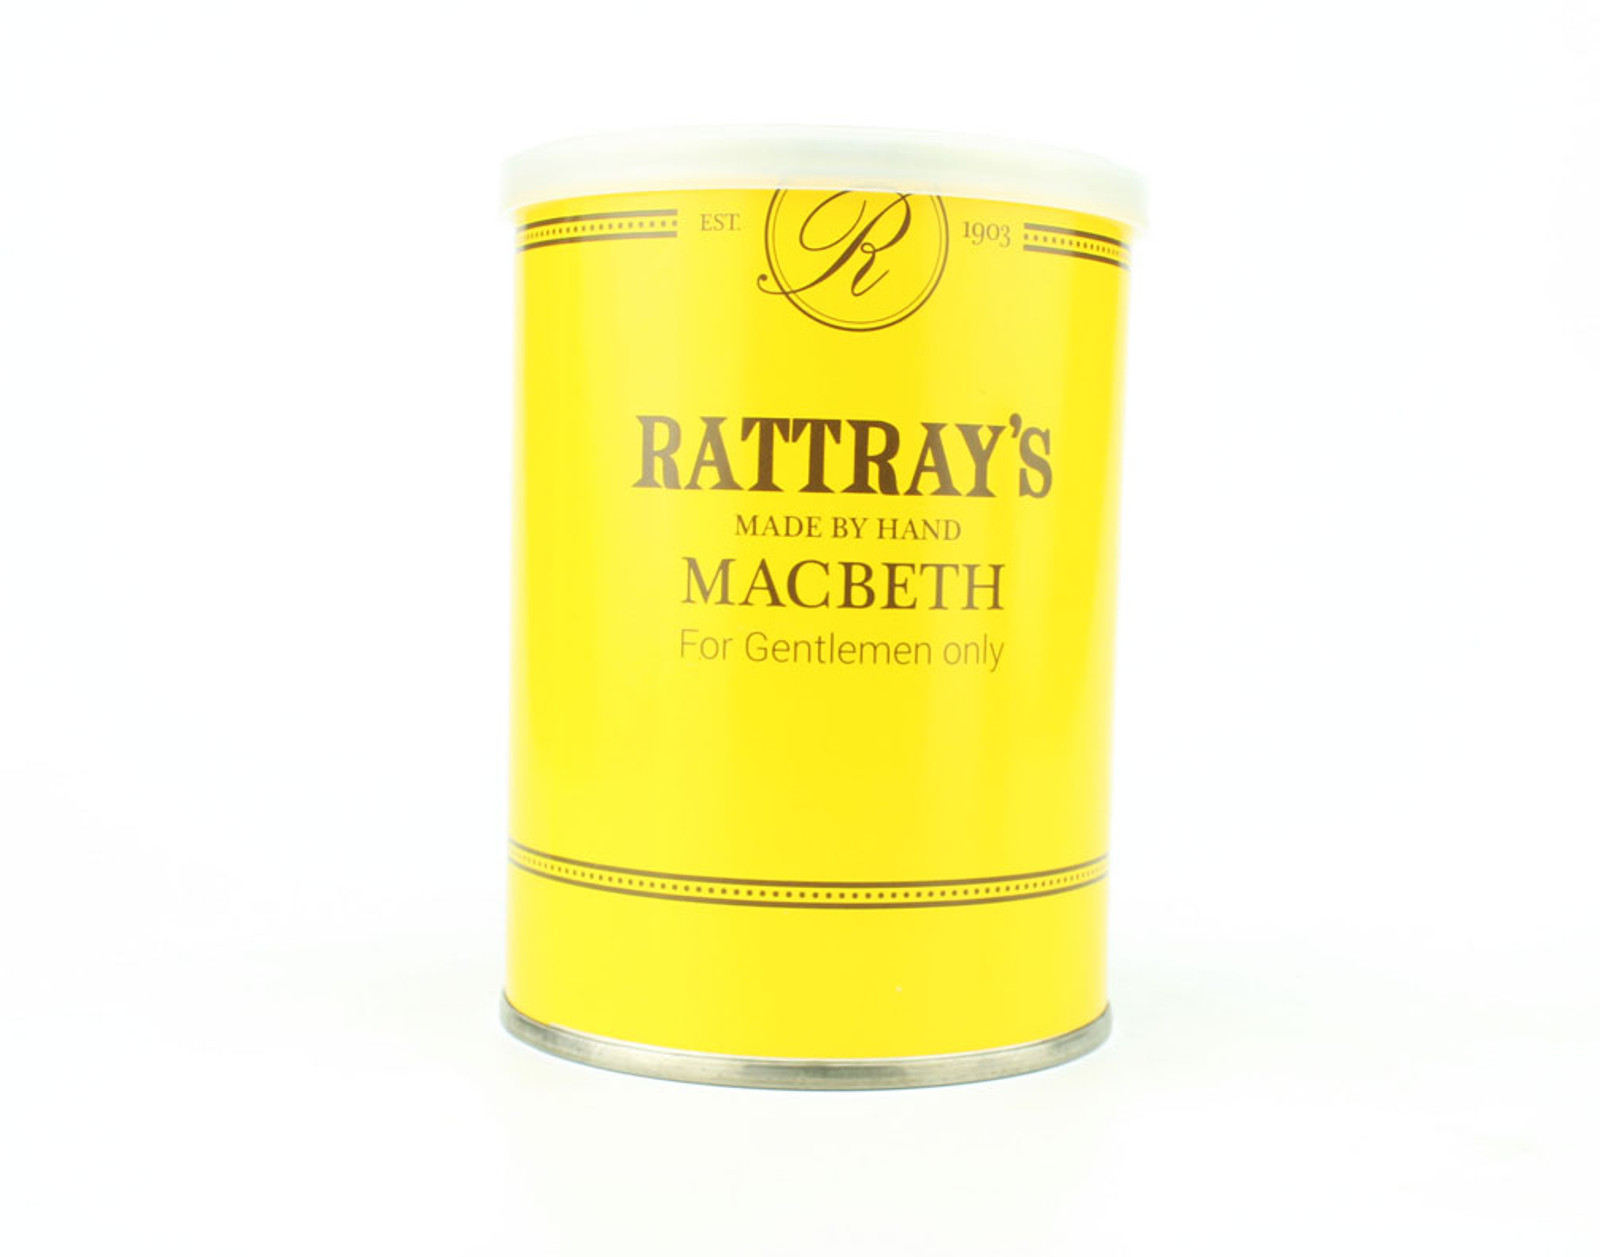 Rattray's Macbeth (100g tin)